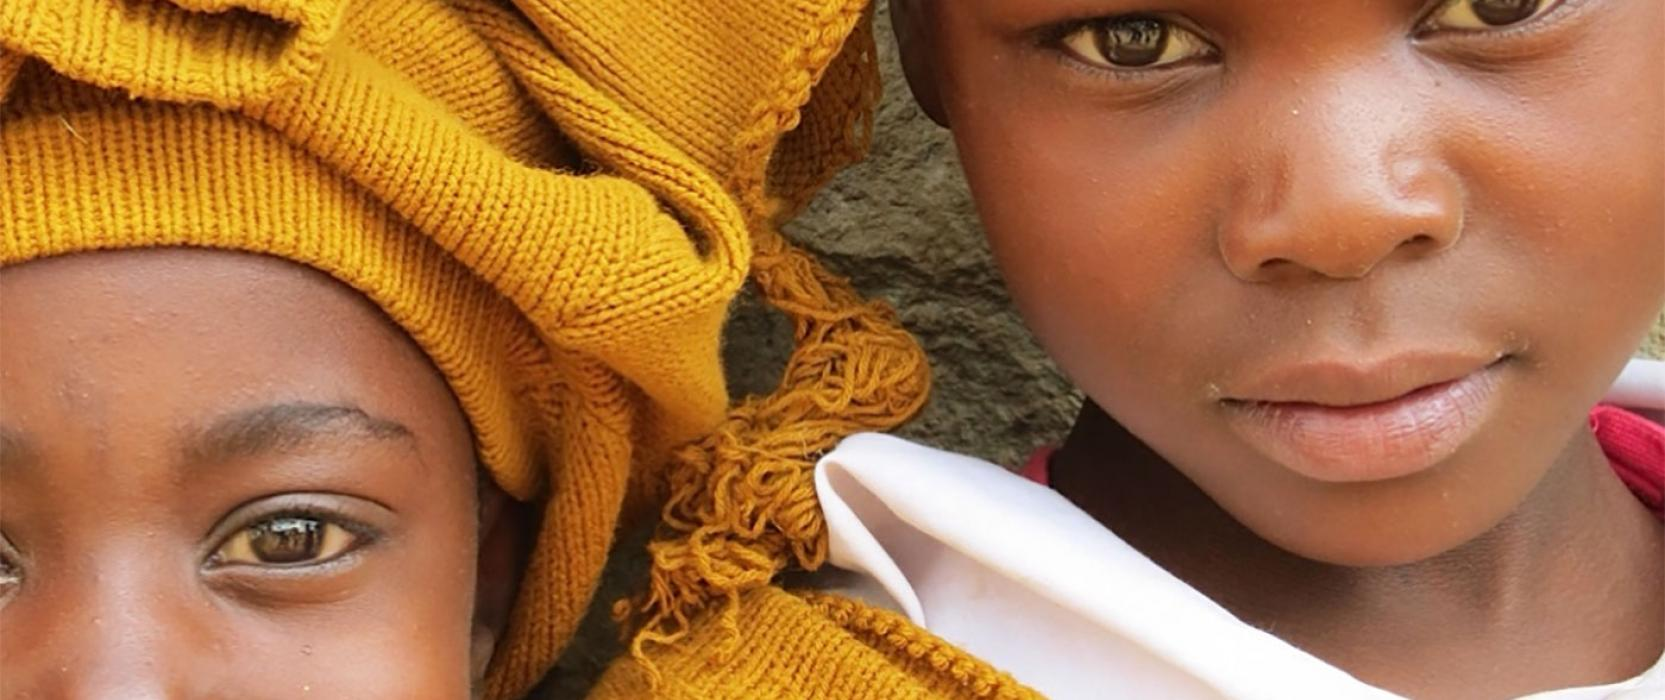 The Leo Project, new Resource Center in Kenya